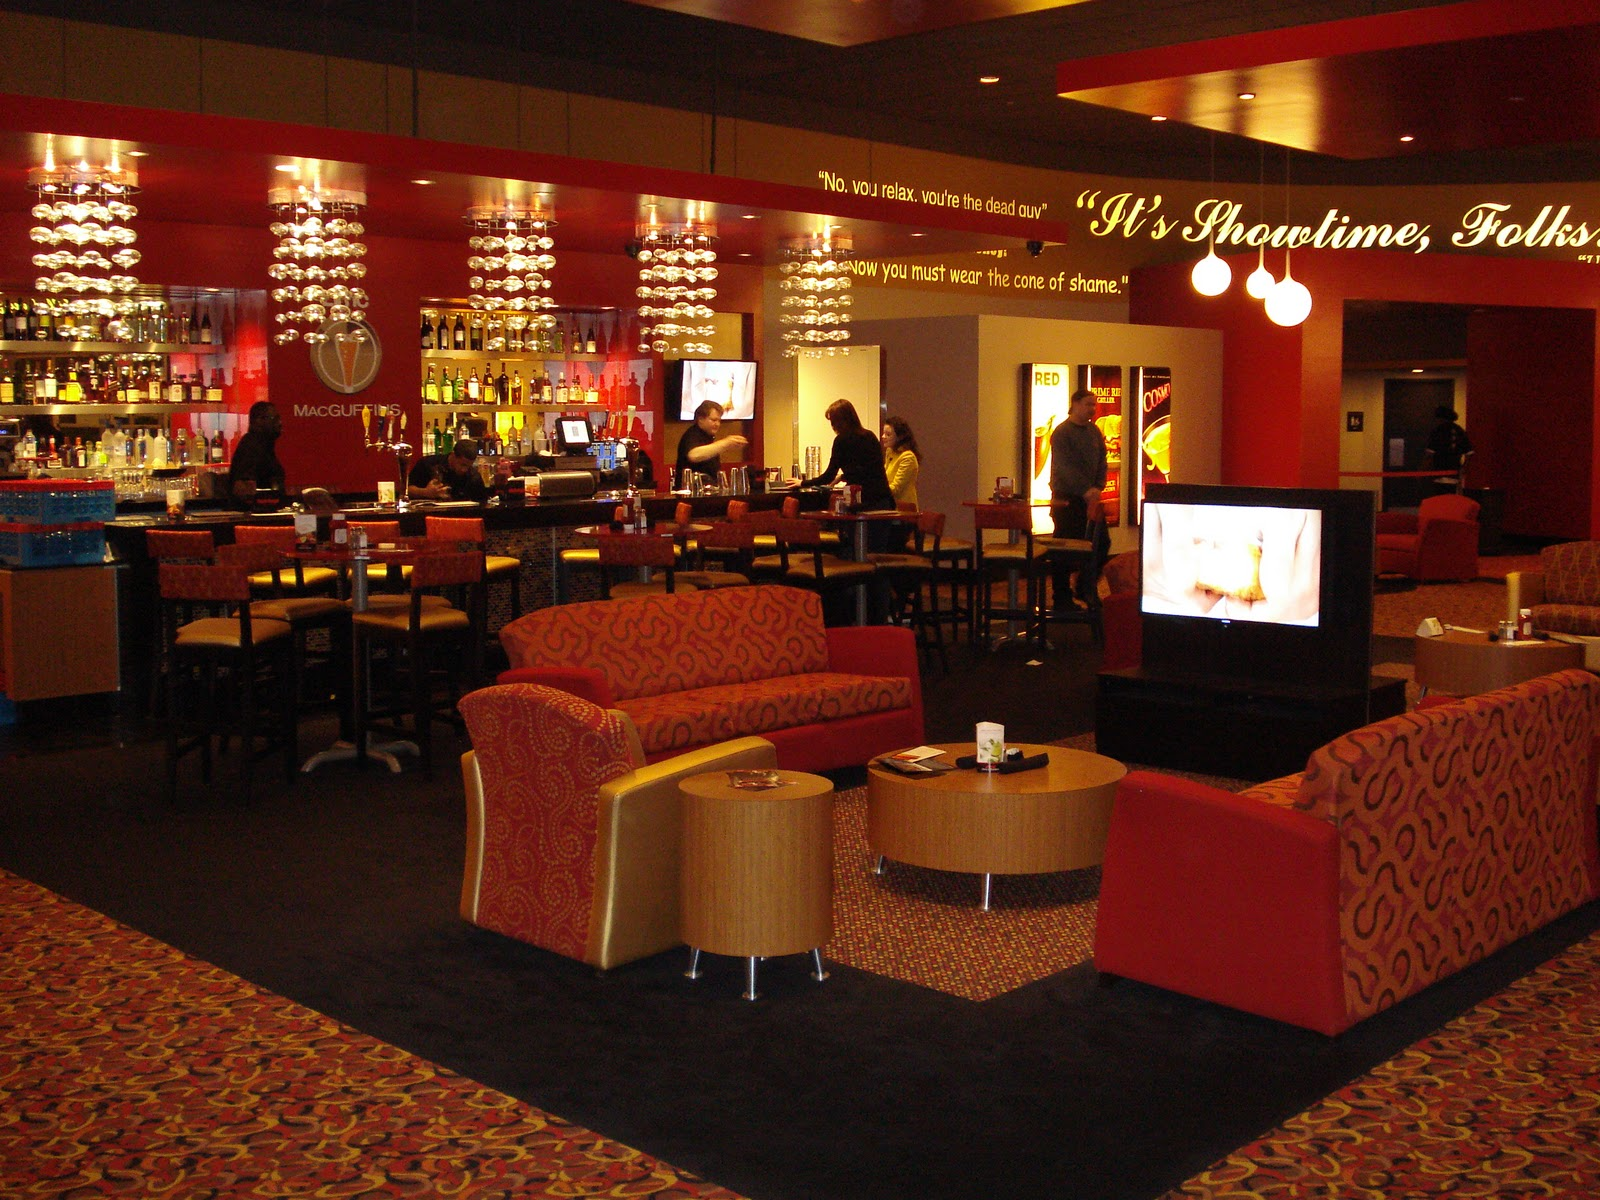 Amc dine in theater review New jersey dine in theatre